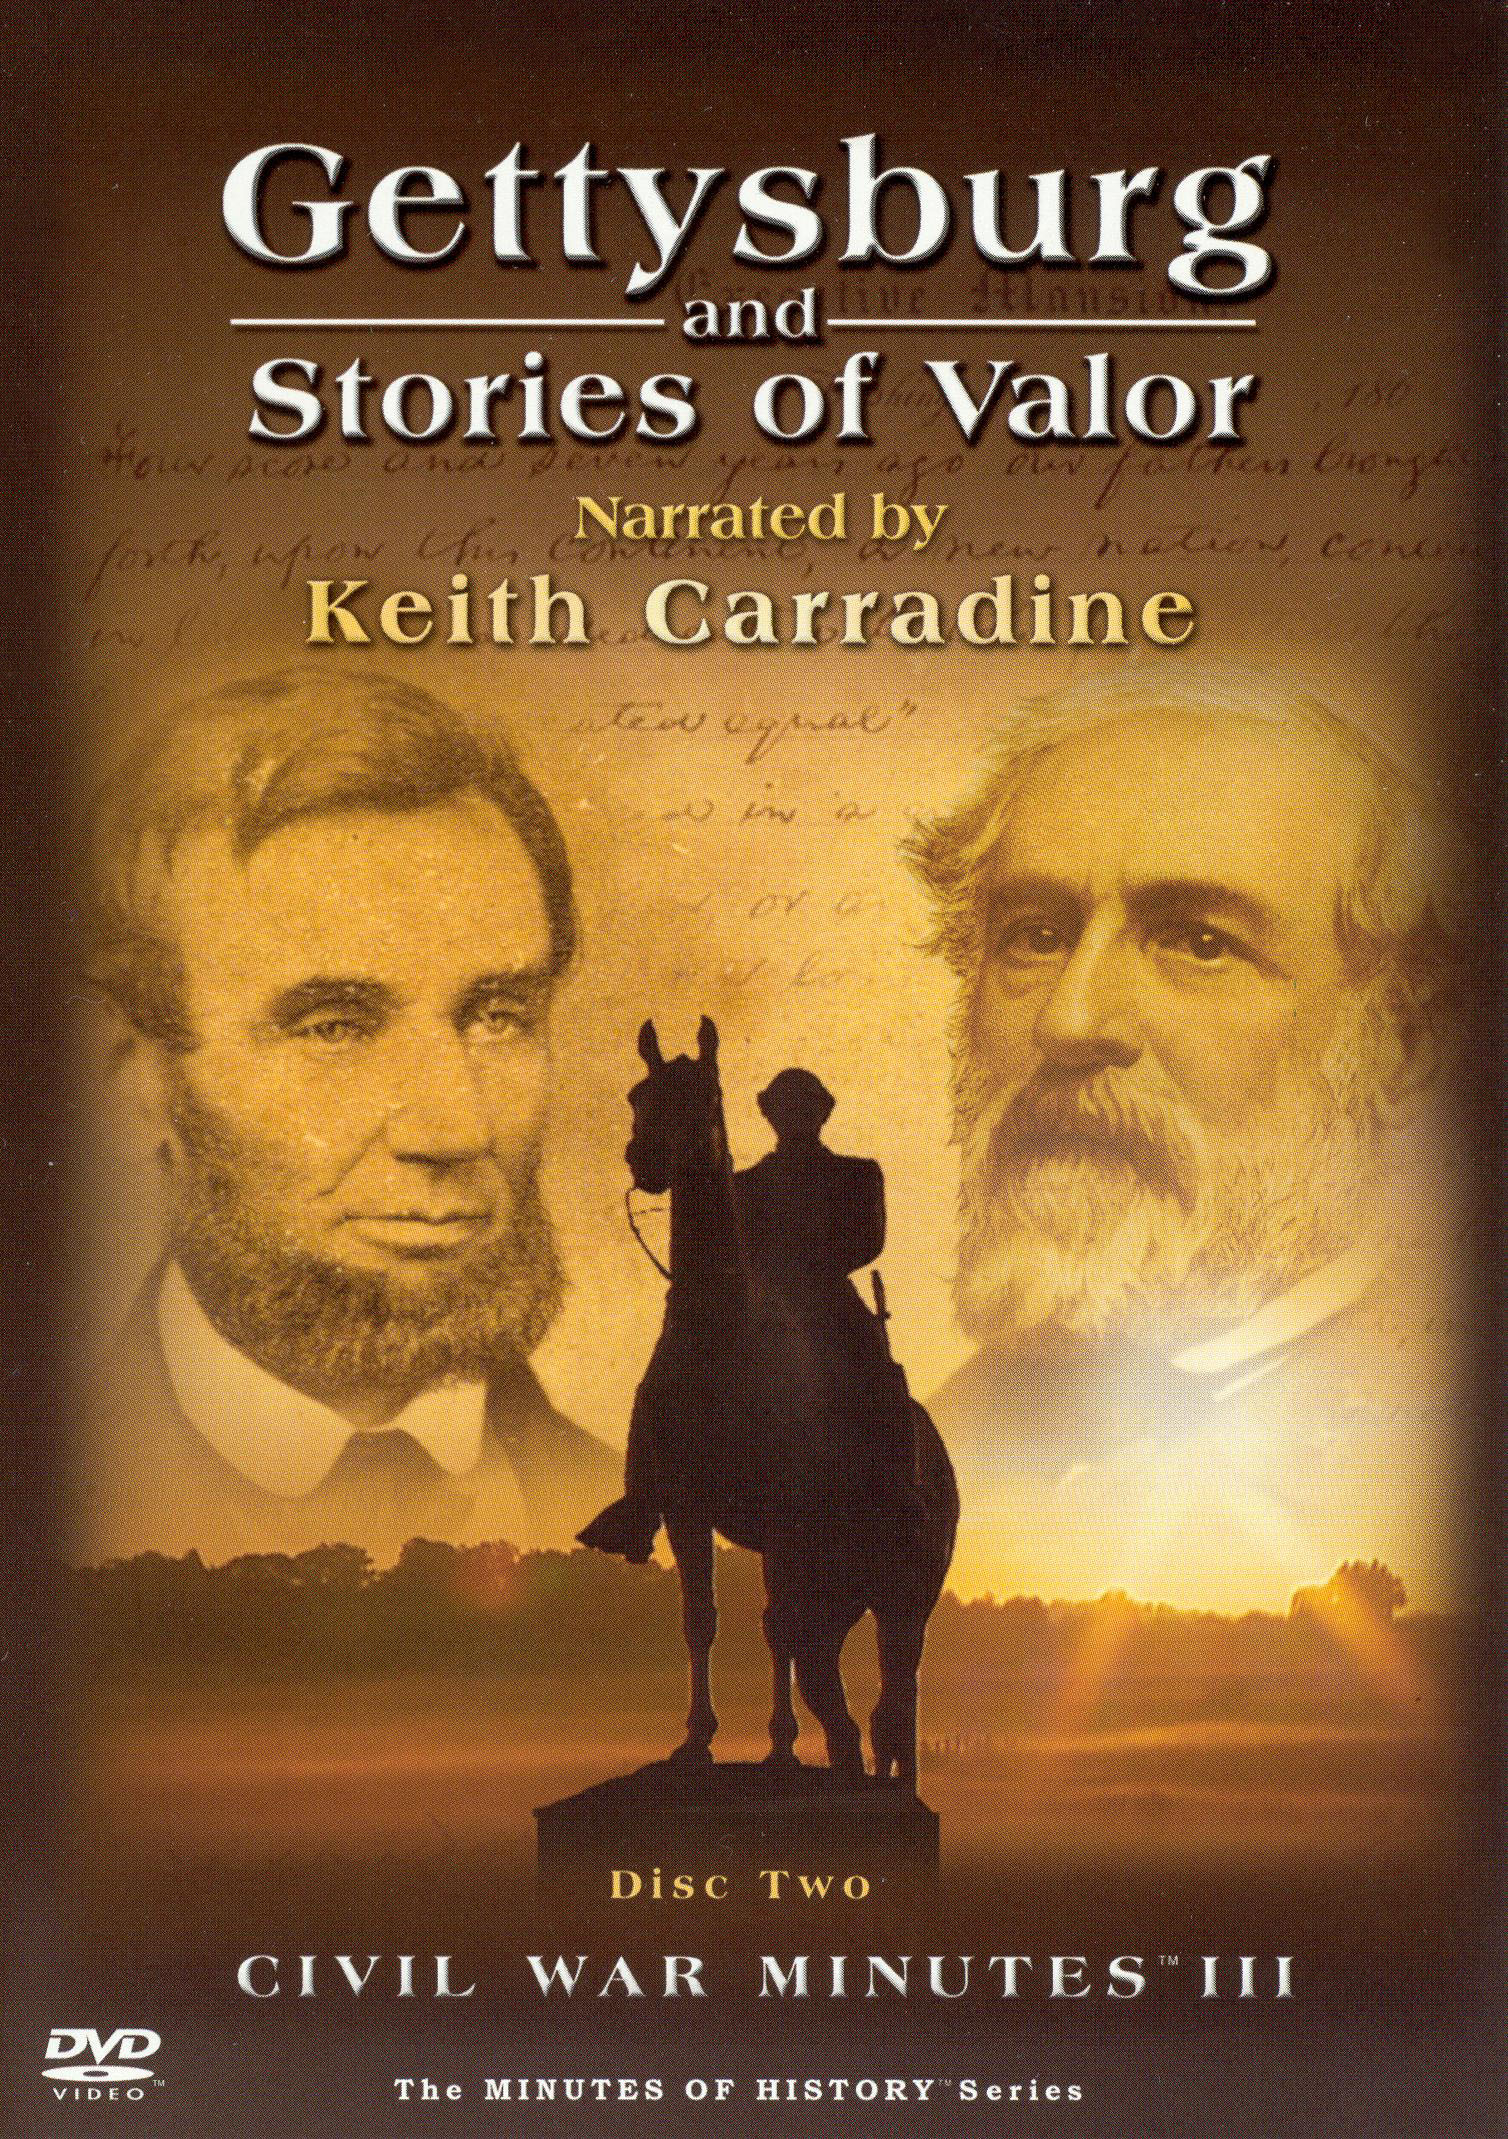 Civil War Minutes III: Gettysburg and Stories of Valor, Vol. 2